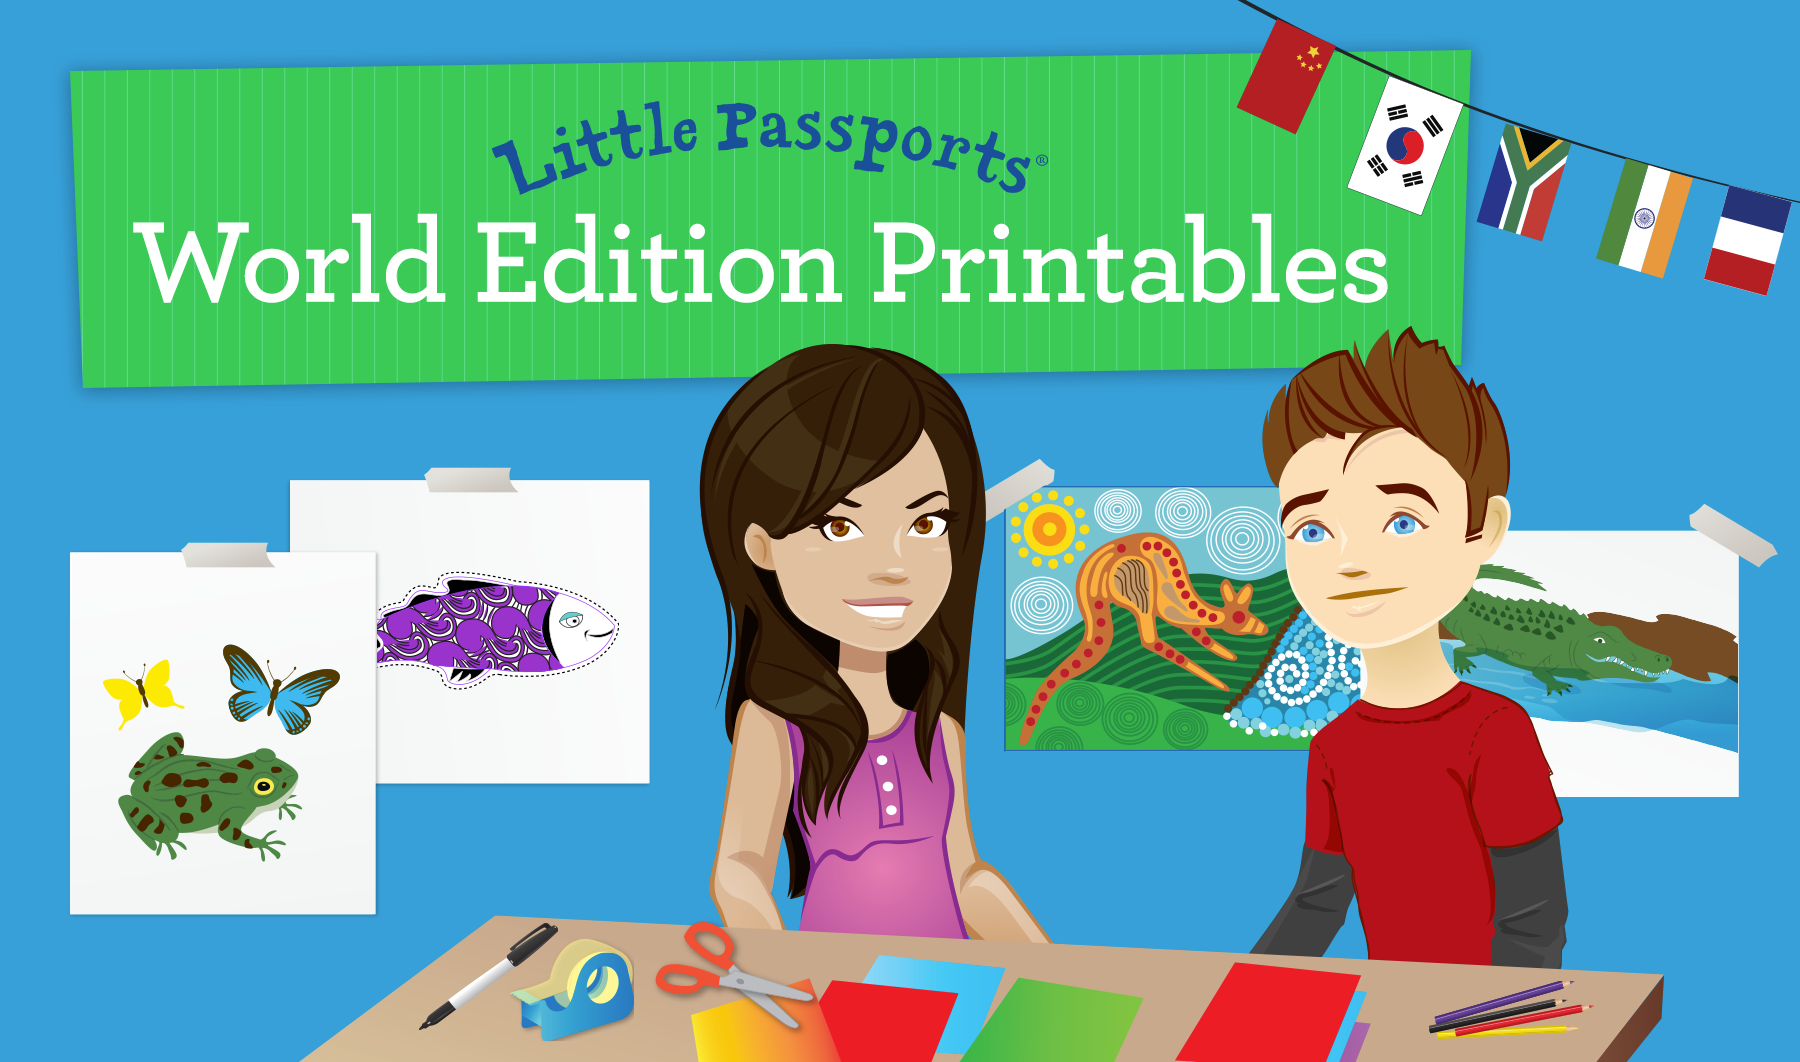 blog-header-WE-printables-04